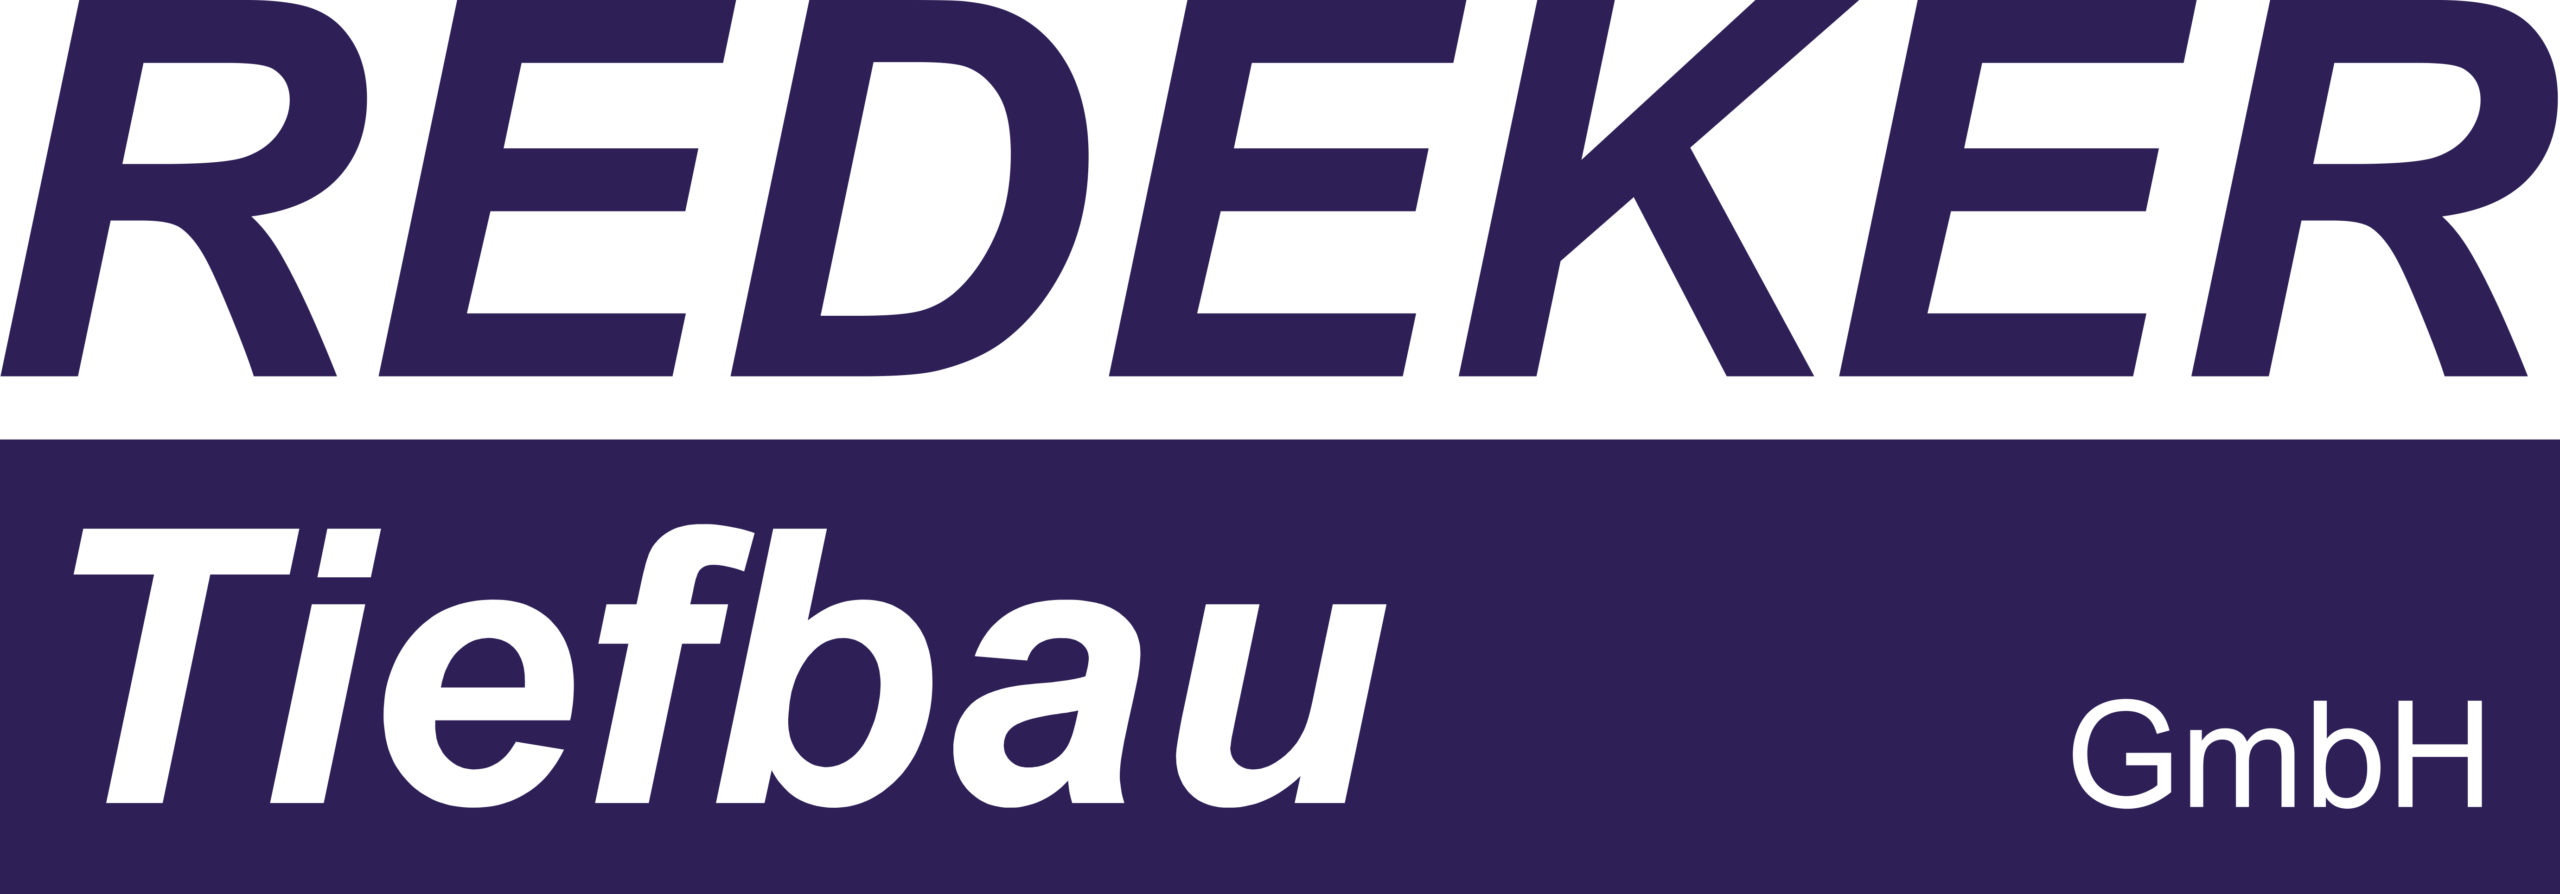 https://redeker-tiefbau.de/wp-content/uploads/2020/07/Logo-scaled.jpg